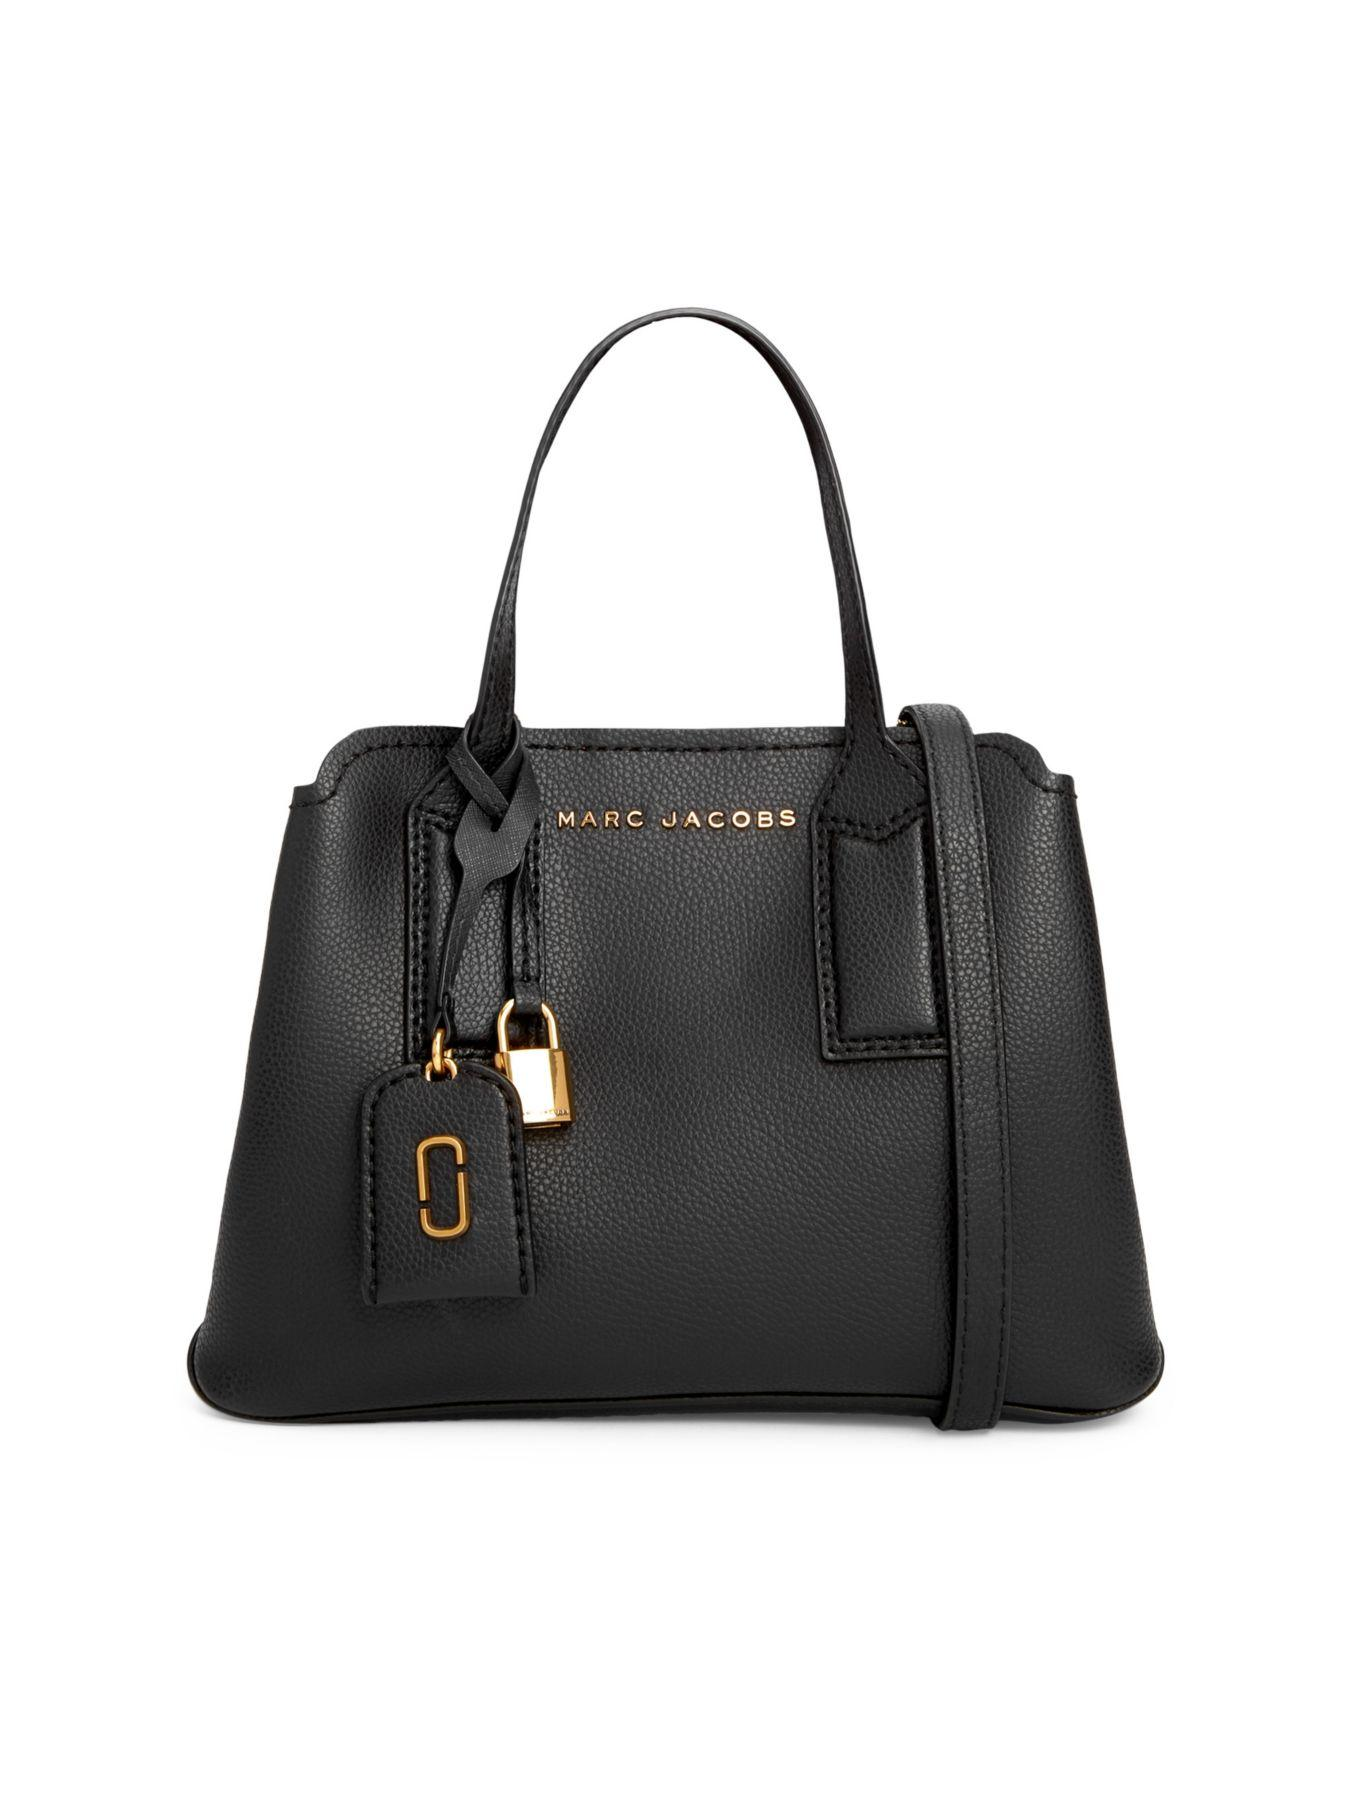 Marc Jacobs The Editor Black Leather Tote Bag Save 22